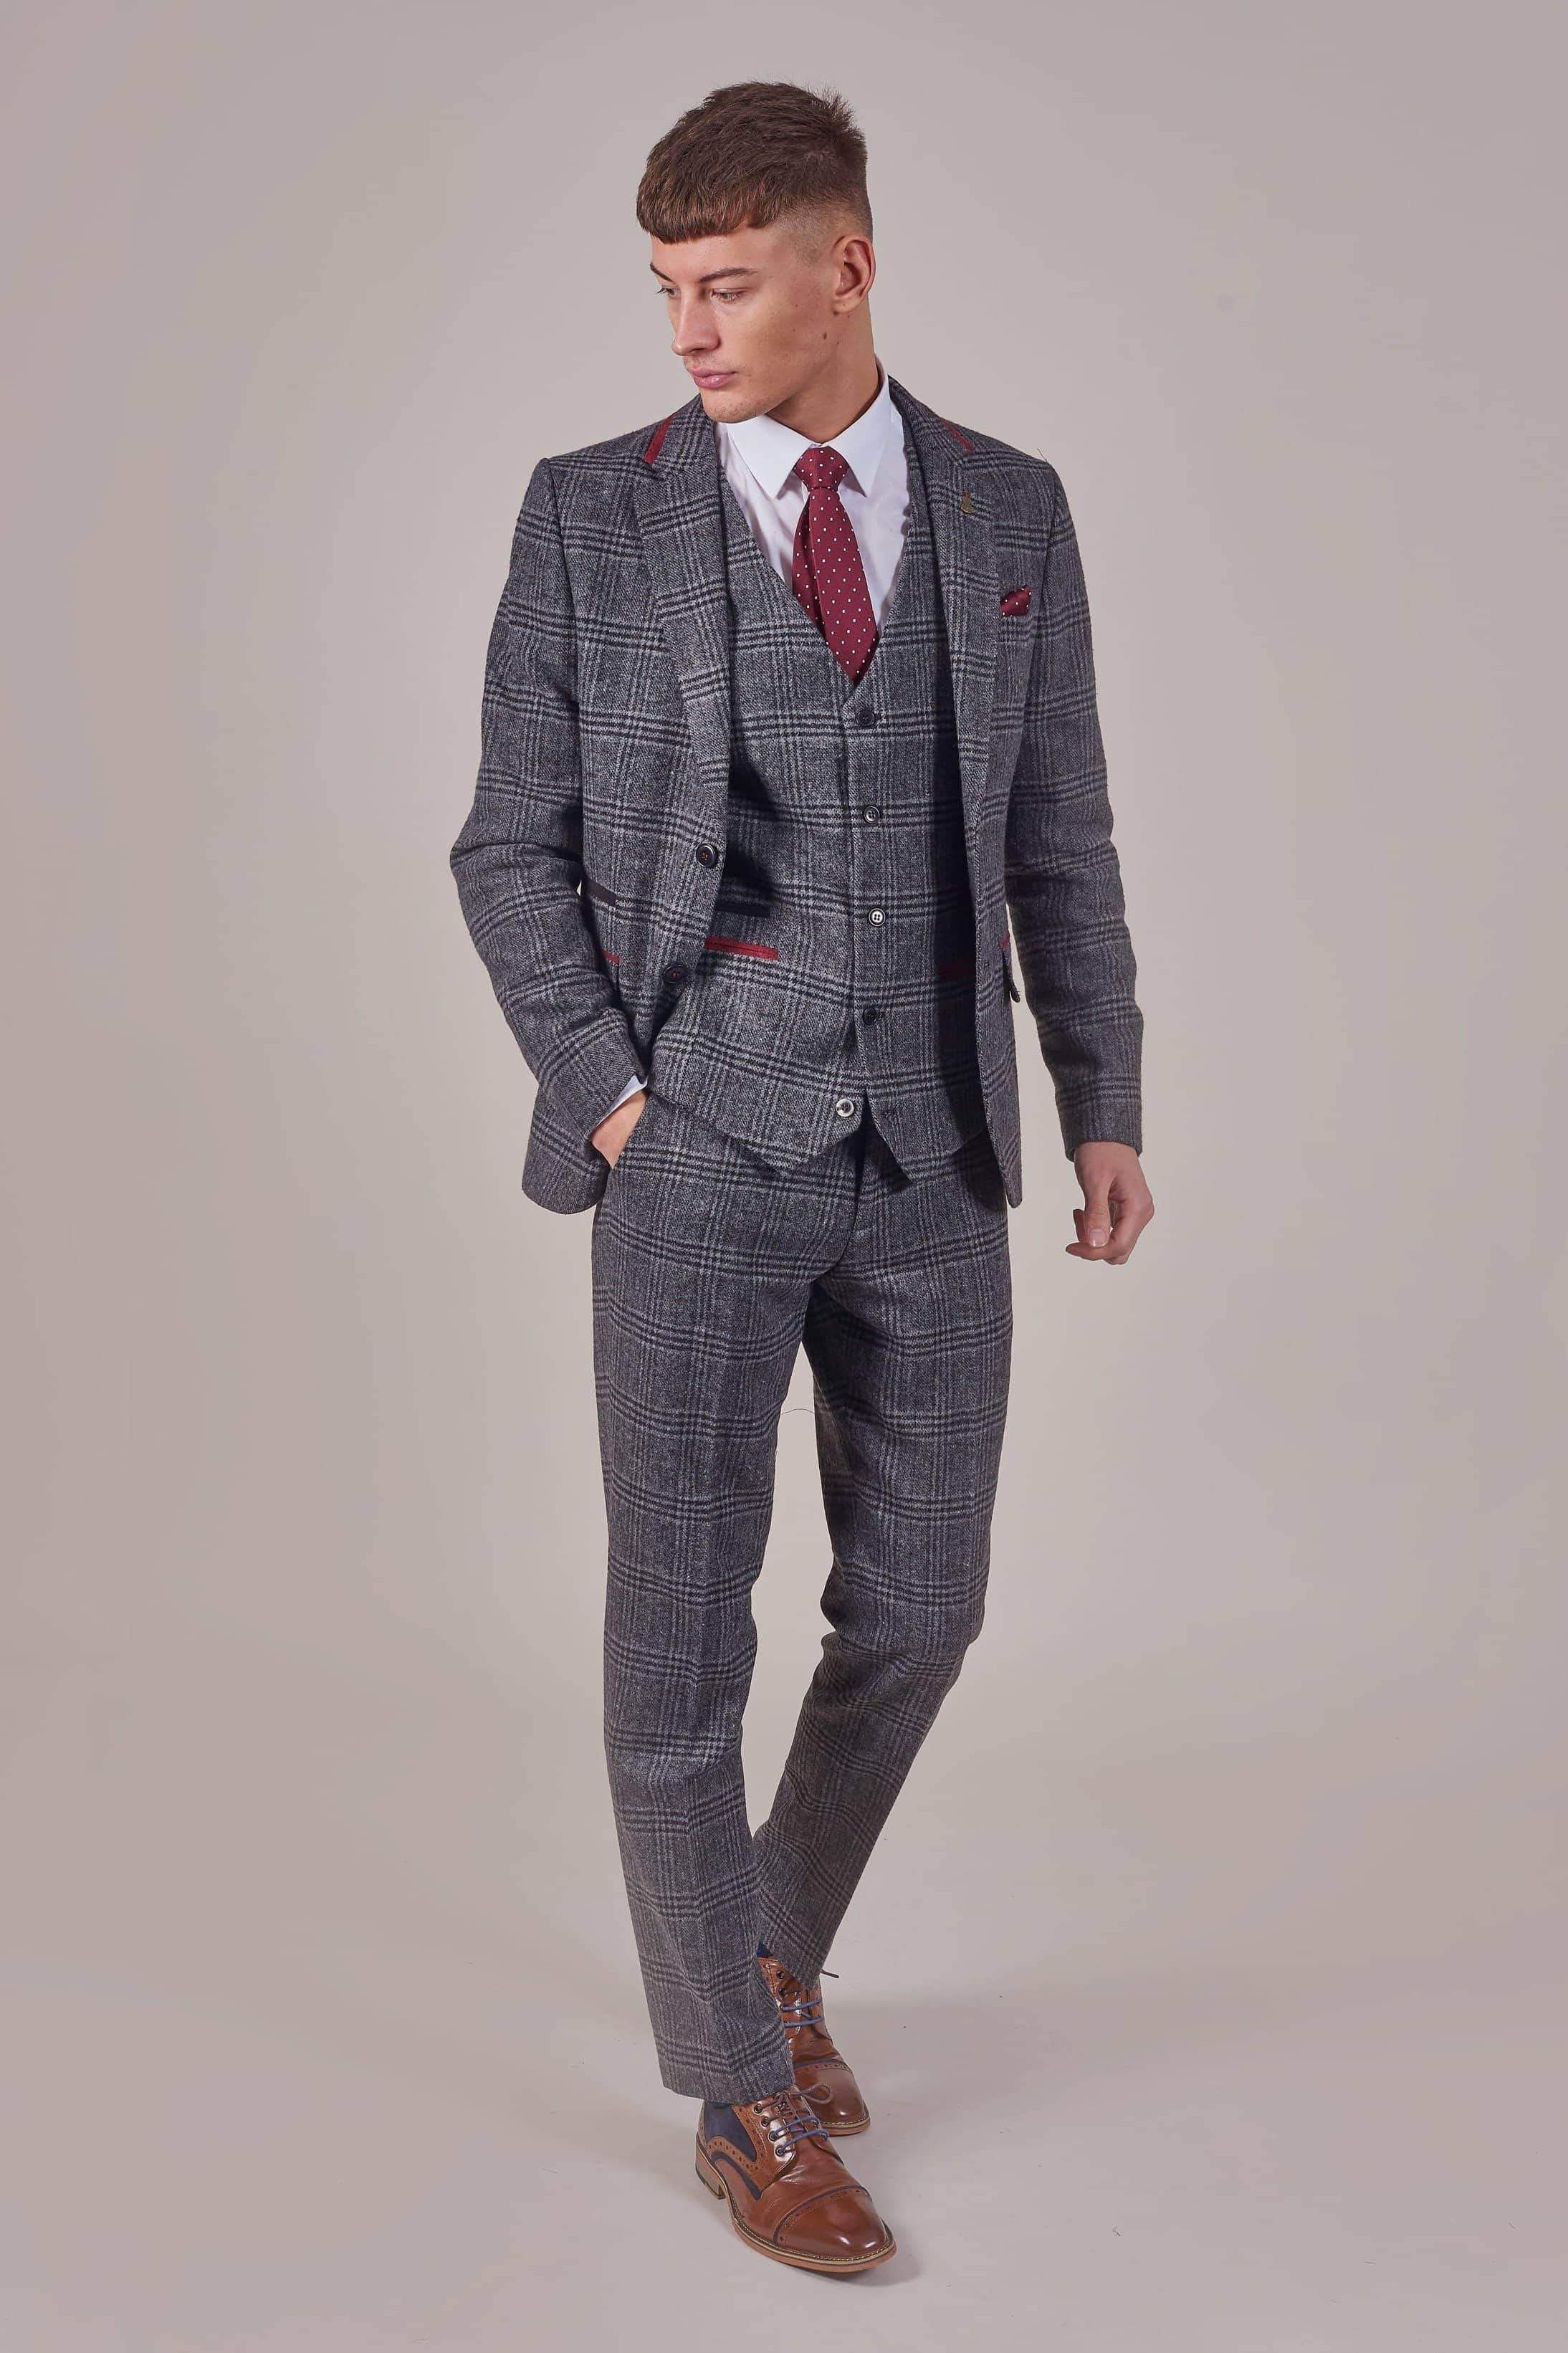 Fratelli Navy With Burgundy Overcheck 3 Piece Suit